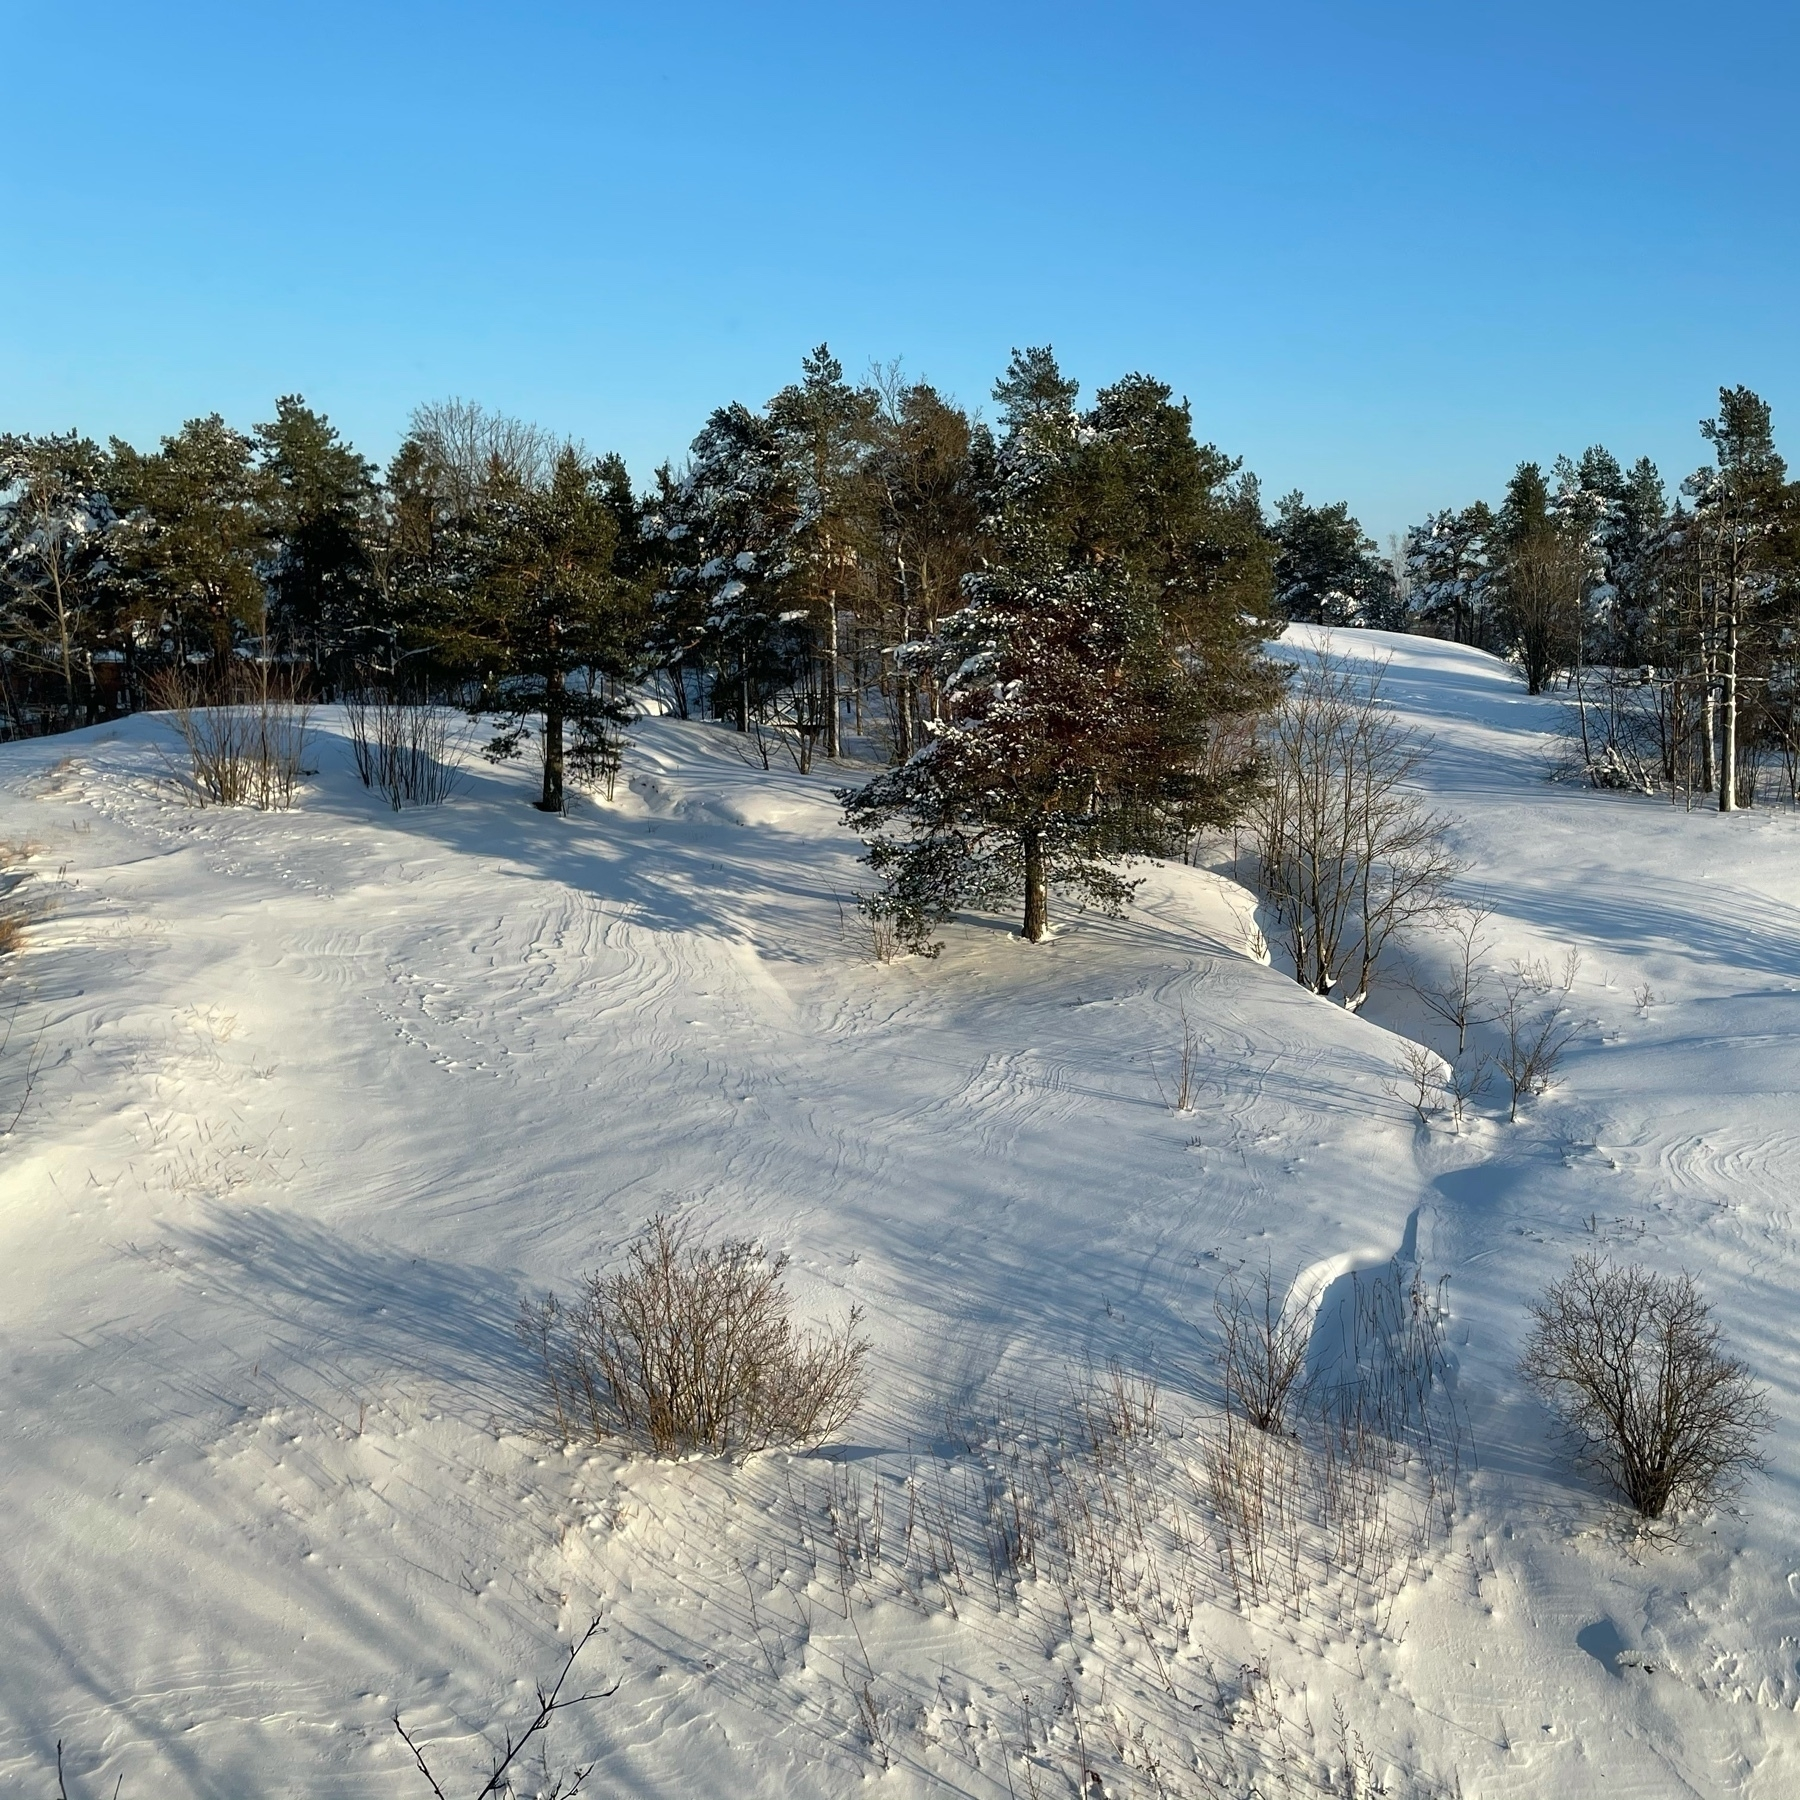 hill, with a lot of snow, some snow dunes starting to form, sun, long shadows